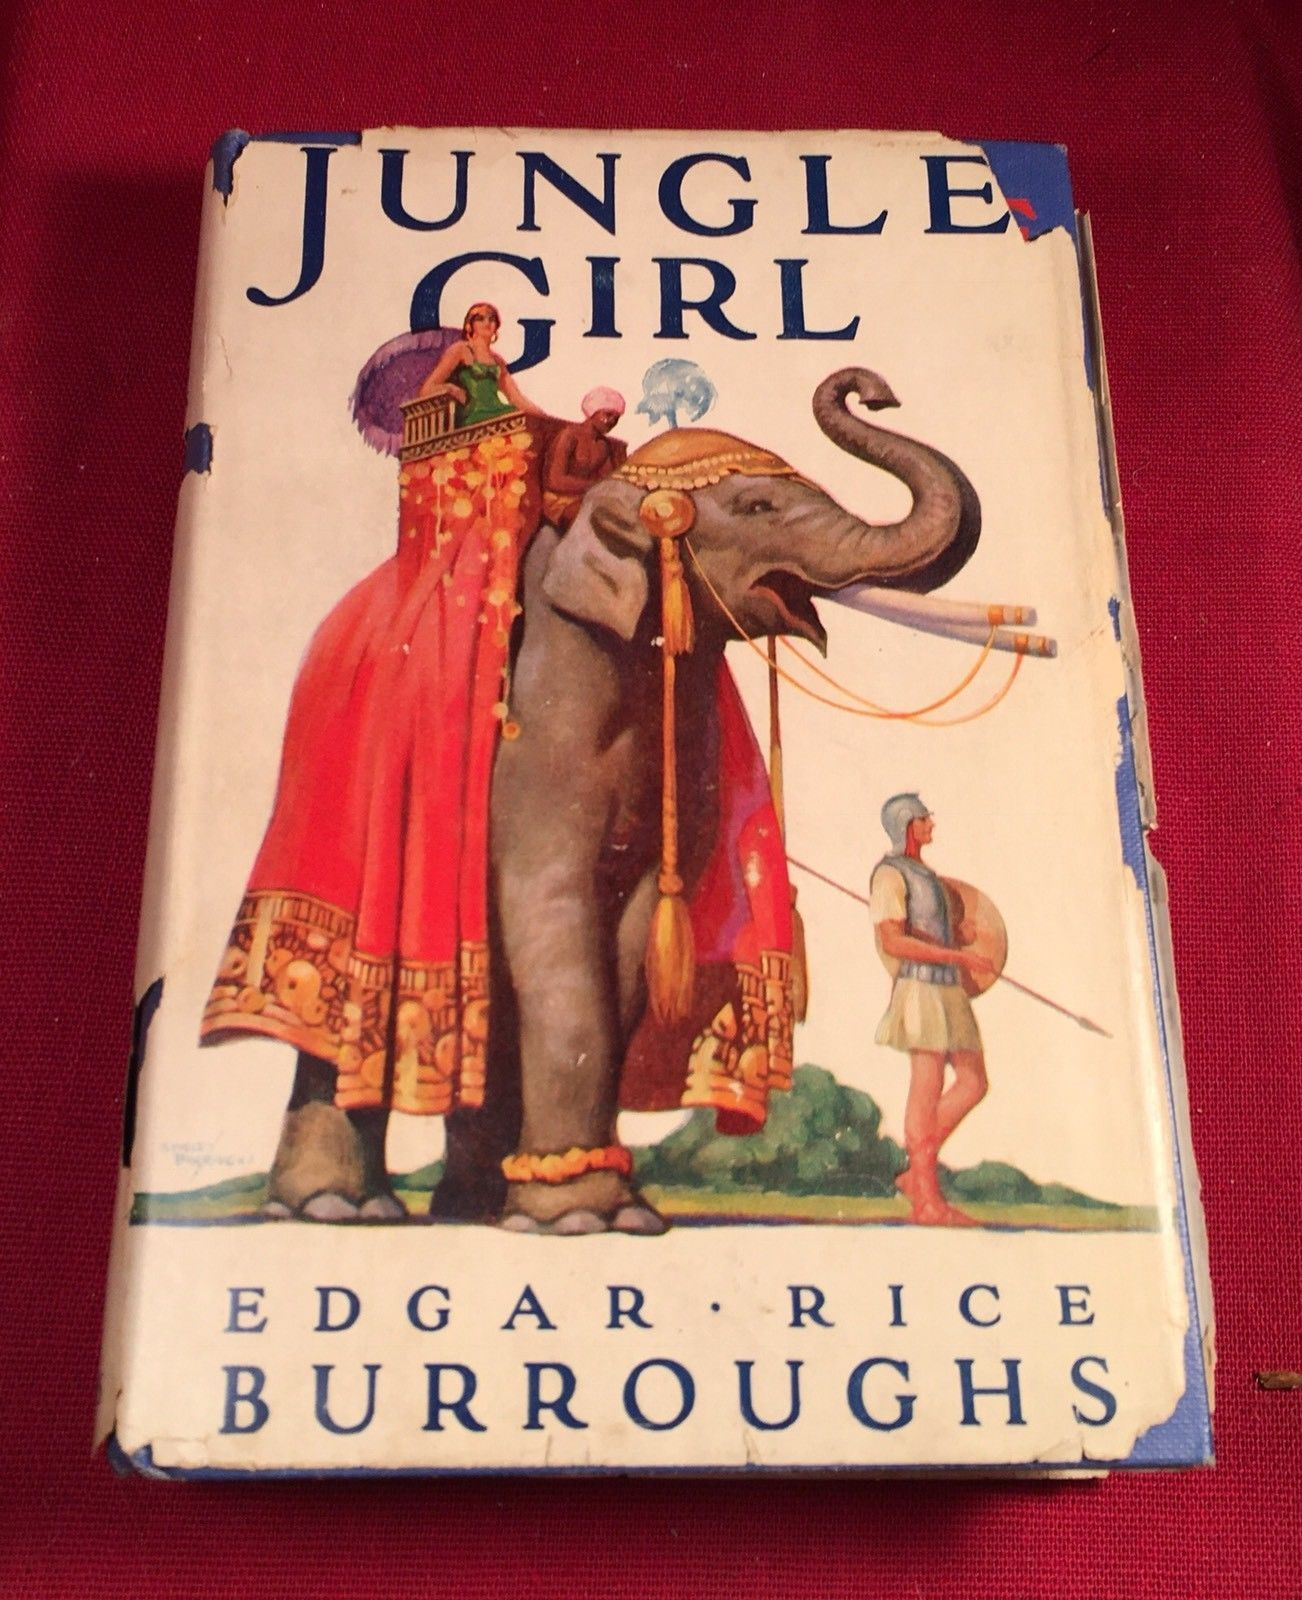 JUNGLE GIRL 1st edition in authentic 1st ed. dust jacket - Edgar Rice Burroughs